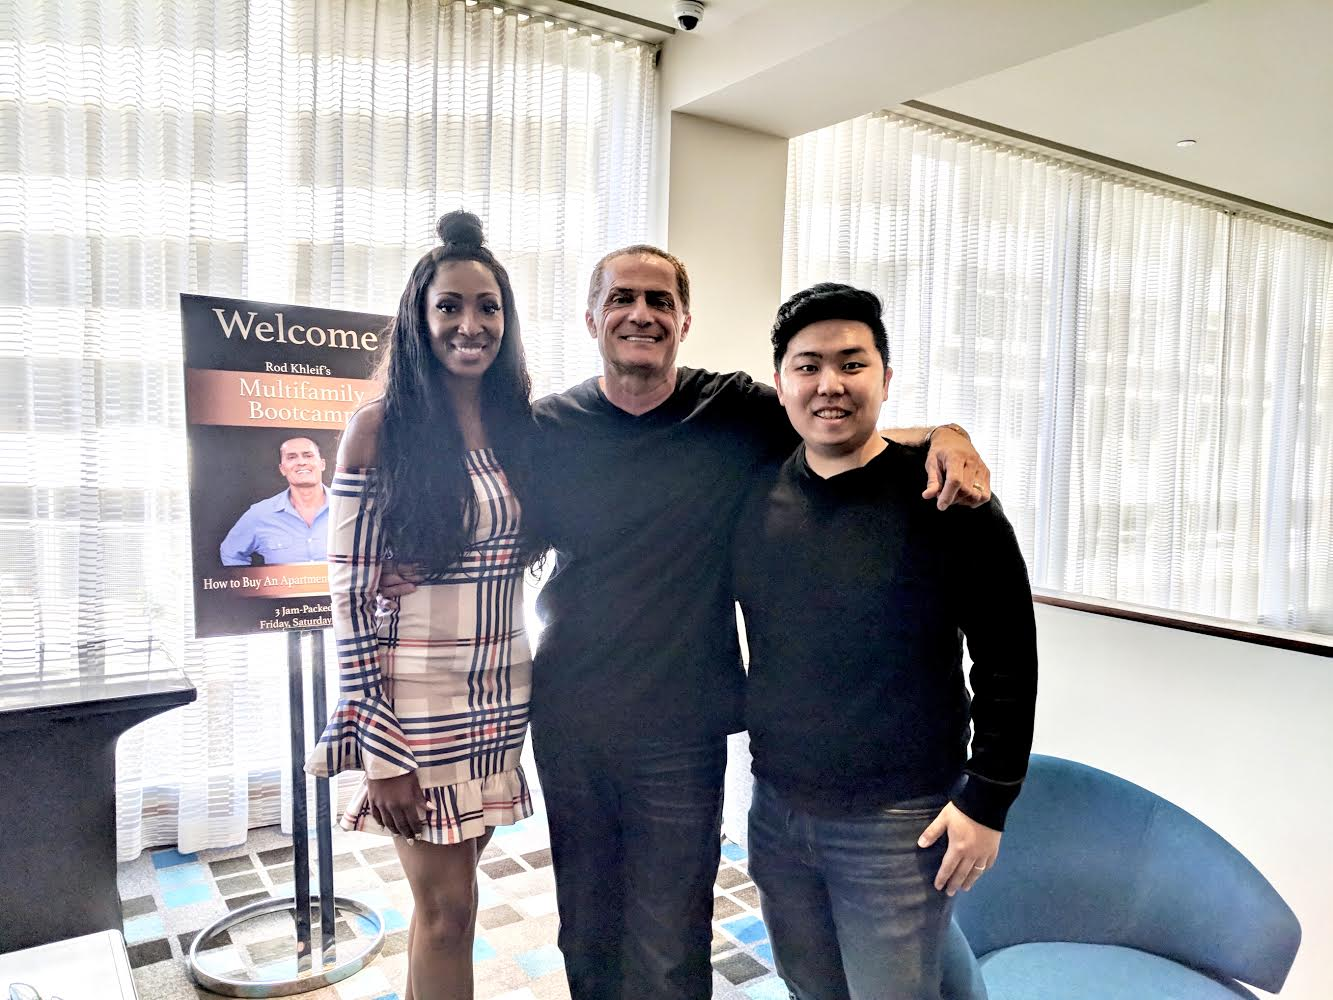 Tiffany khleif (left), Rod khleif (middle), ME (Right) during rod's multifamily bootcamp 2018